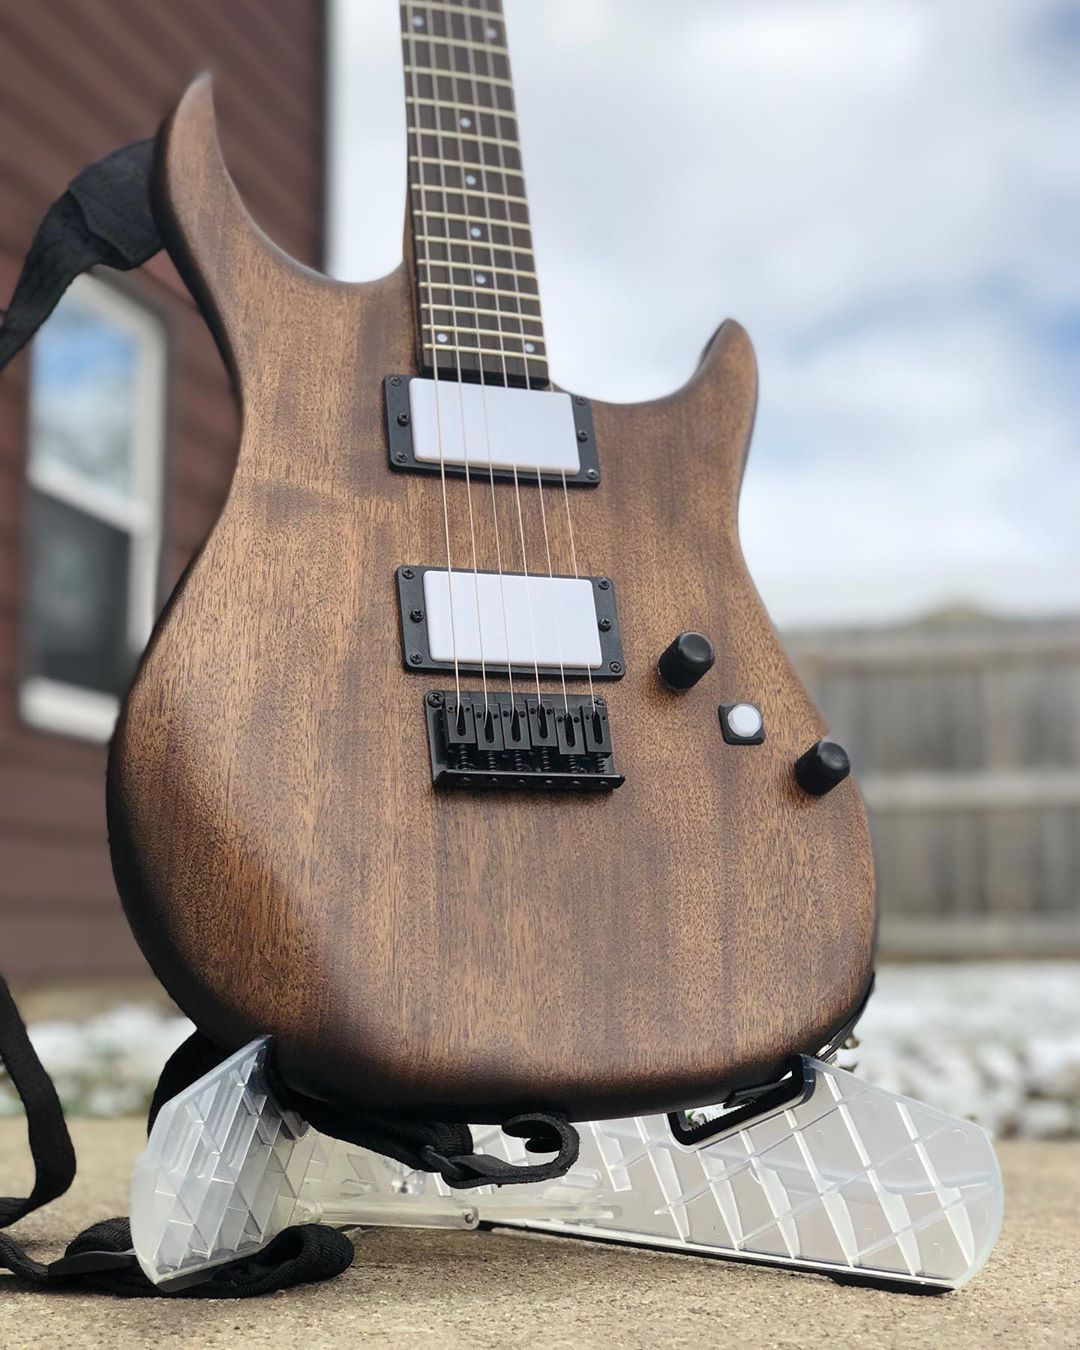 "Chris Nunley on Instagram: ""Here's a few shots from my last guitar build. Love this thing. Weighs 4.2 lbs. #guitars #guitar #music #guitarist #guitarplayer #musician…"" #guitarbuilding Chris Nunley on Instagram: ""Here's a few shots from my last guitar build. Love this thing. Weighs 4.2 lbs. #guitars #guitar #music #guitarist #guitarplayer #musician…"" #guitarbuilding Chris Nunley on Instagram: ""Here's a few shots from my last guitar build. Love this thing. Weighs 4.2 lbs. #guit #guitarbuilding"